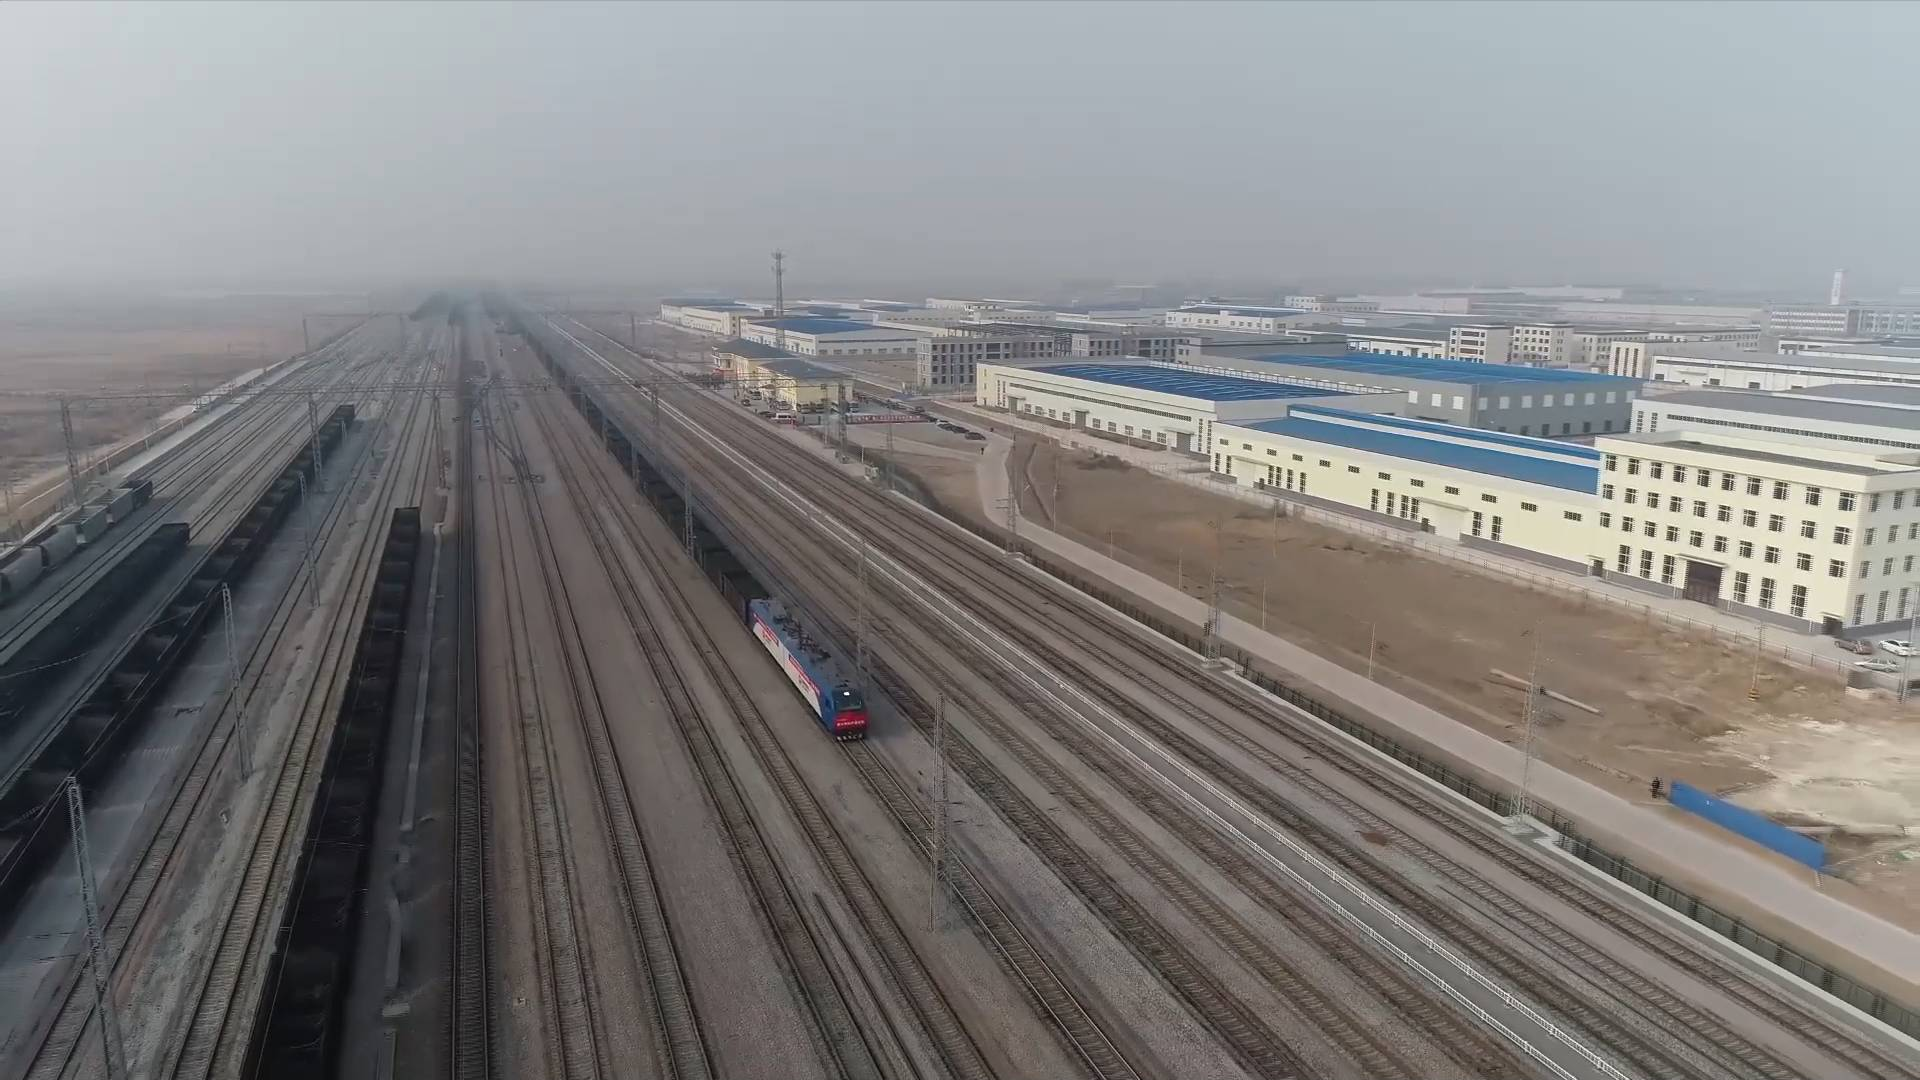 New coal-transporting railway put into service in China